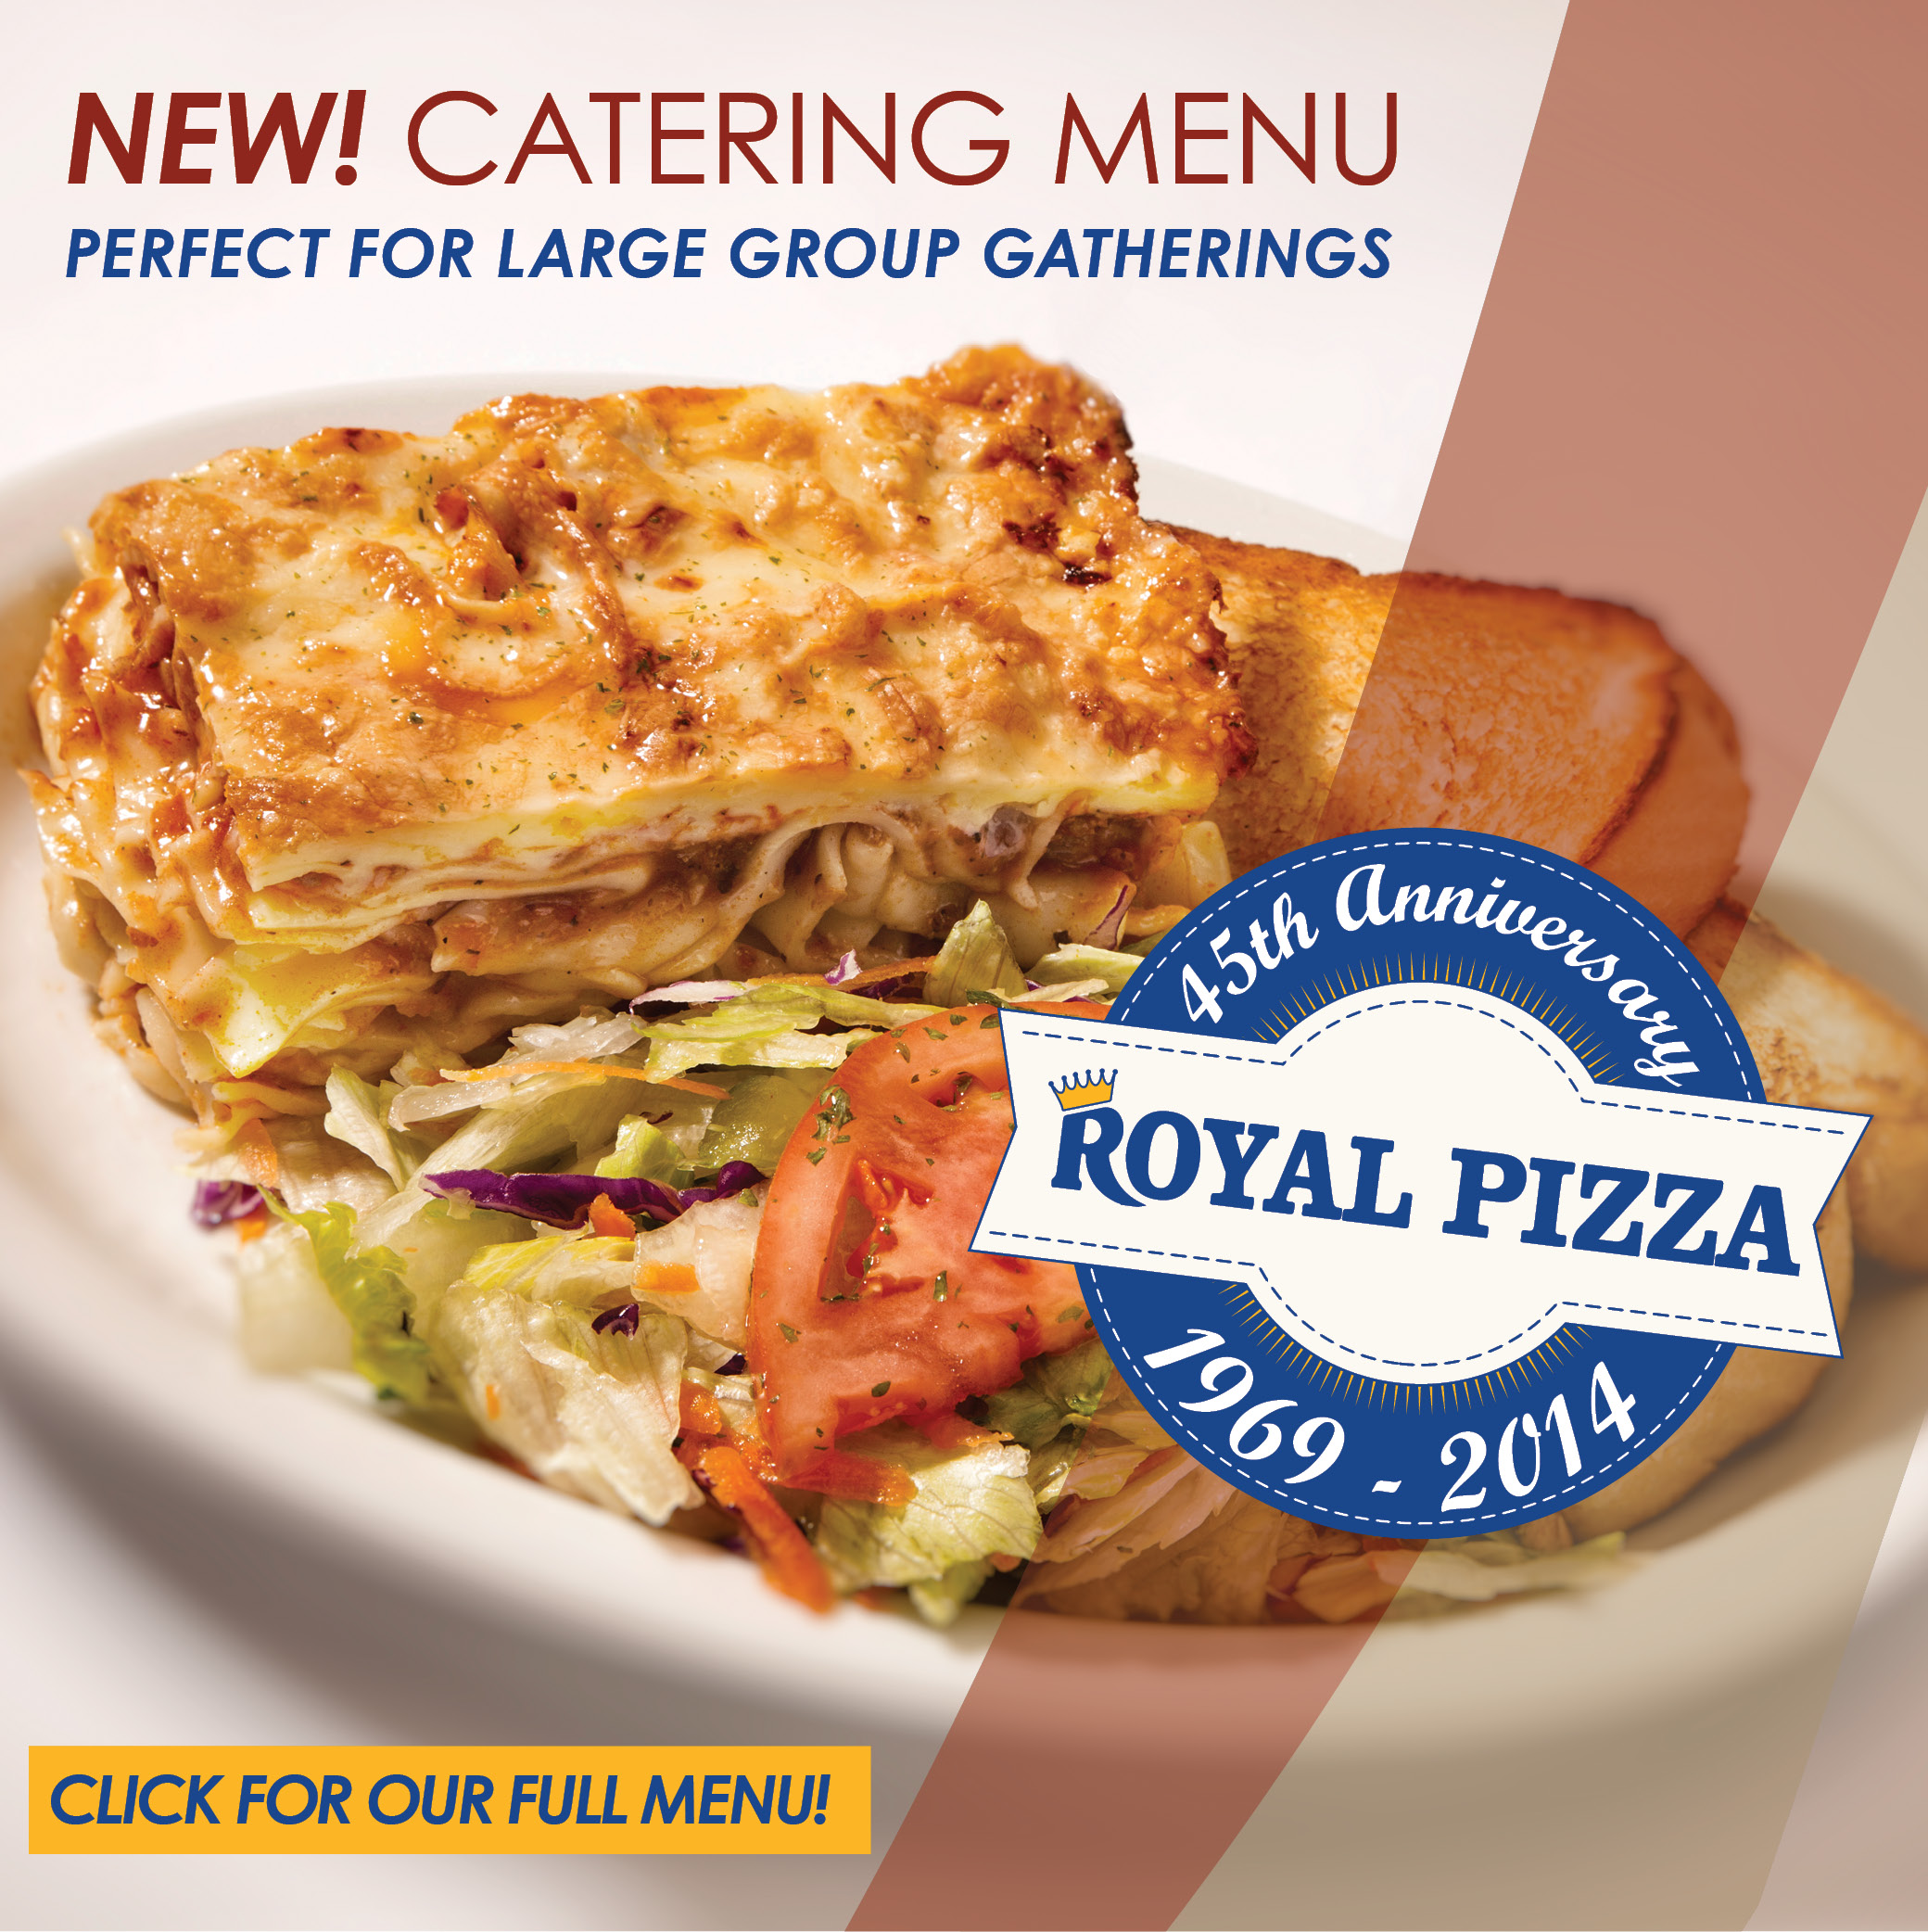 royal-pizza-catering-feature_499x500.jpg